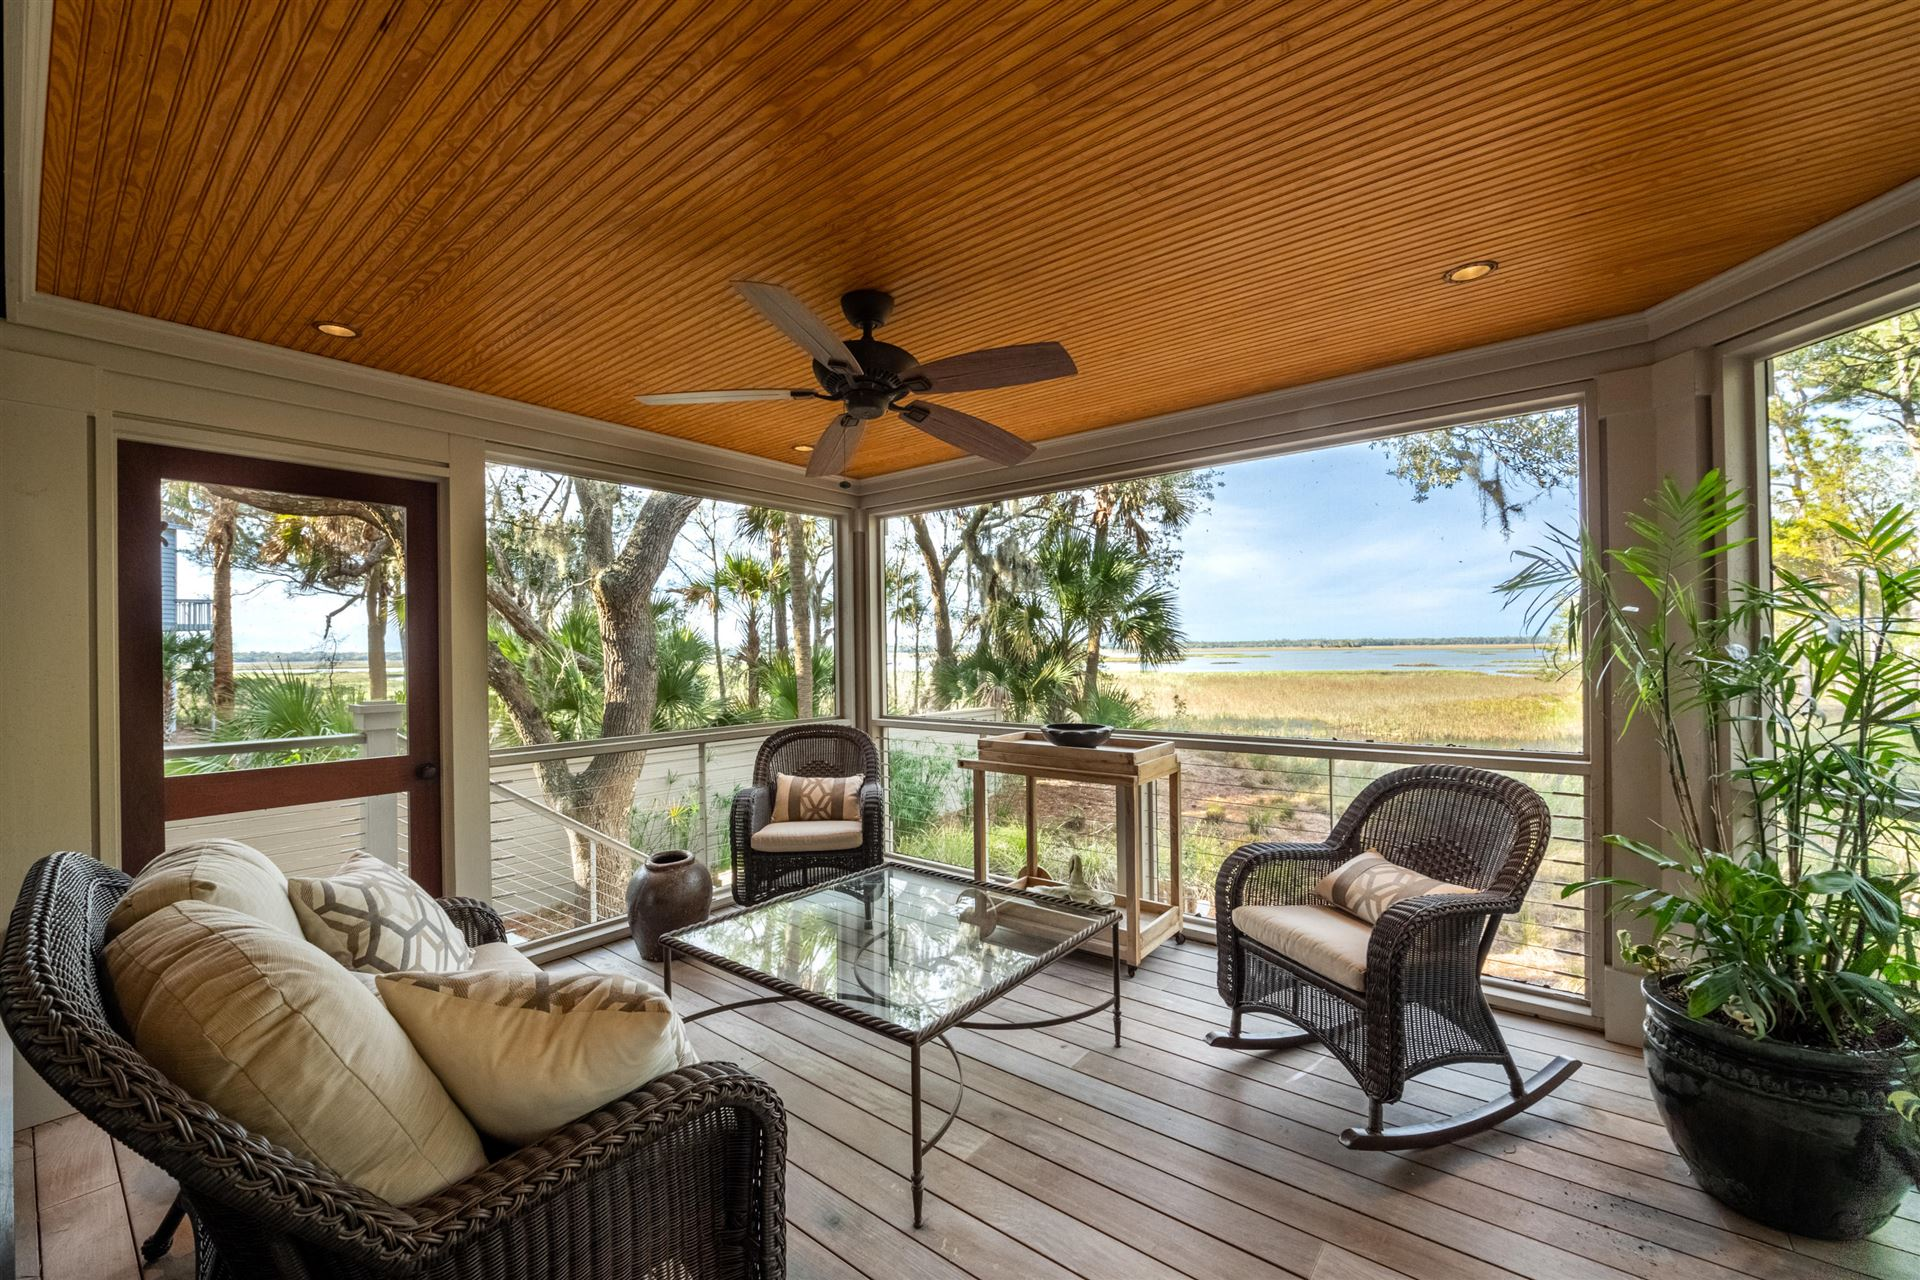 161 Marsh Hawk Lane, Kiawah Island, SC 29455 - #: 20006525